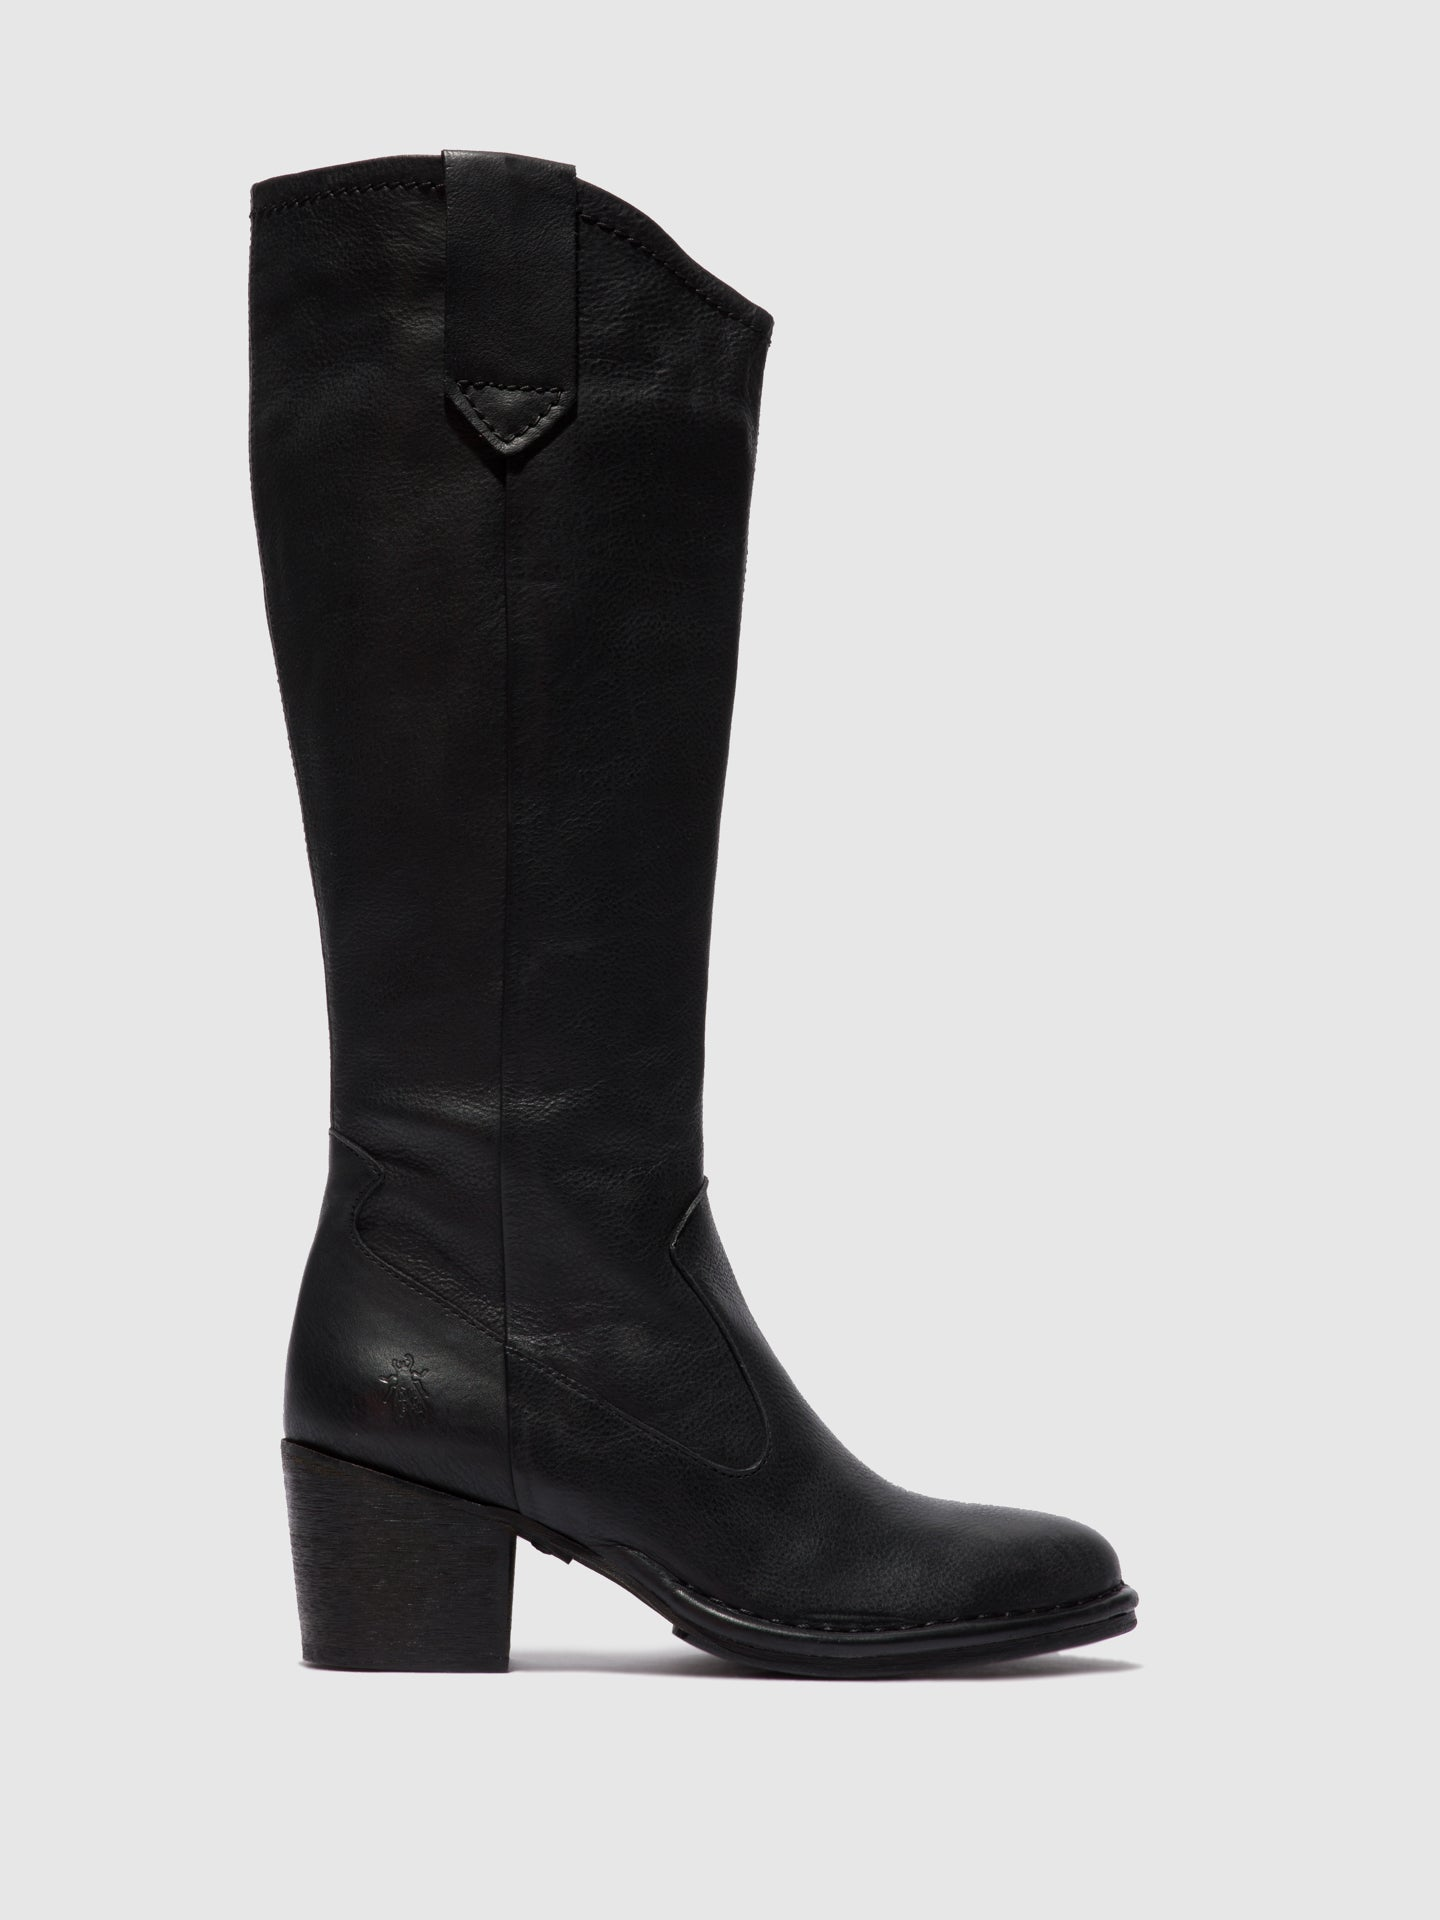 Fly London Zip Up Boots LEON236FLY VERONA BLACK